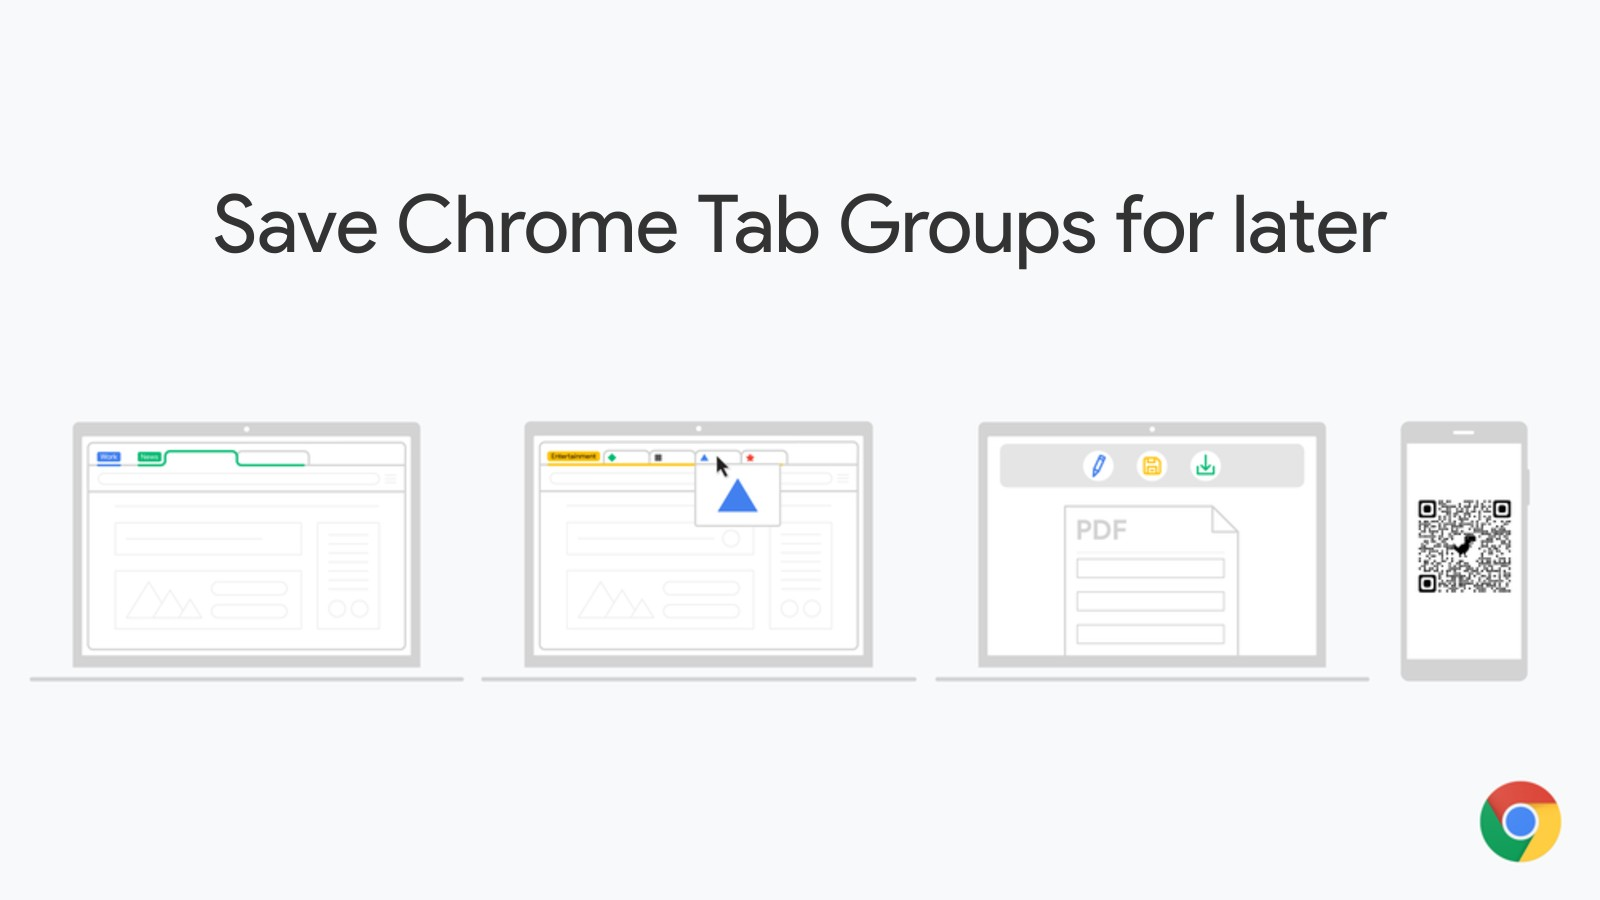 Try out this extension that beat Google to letting you store tab groups for later